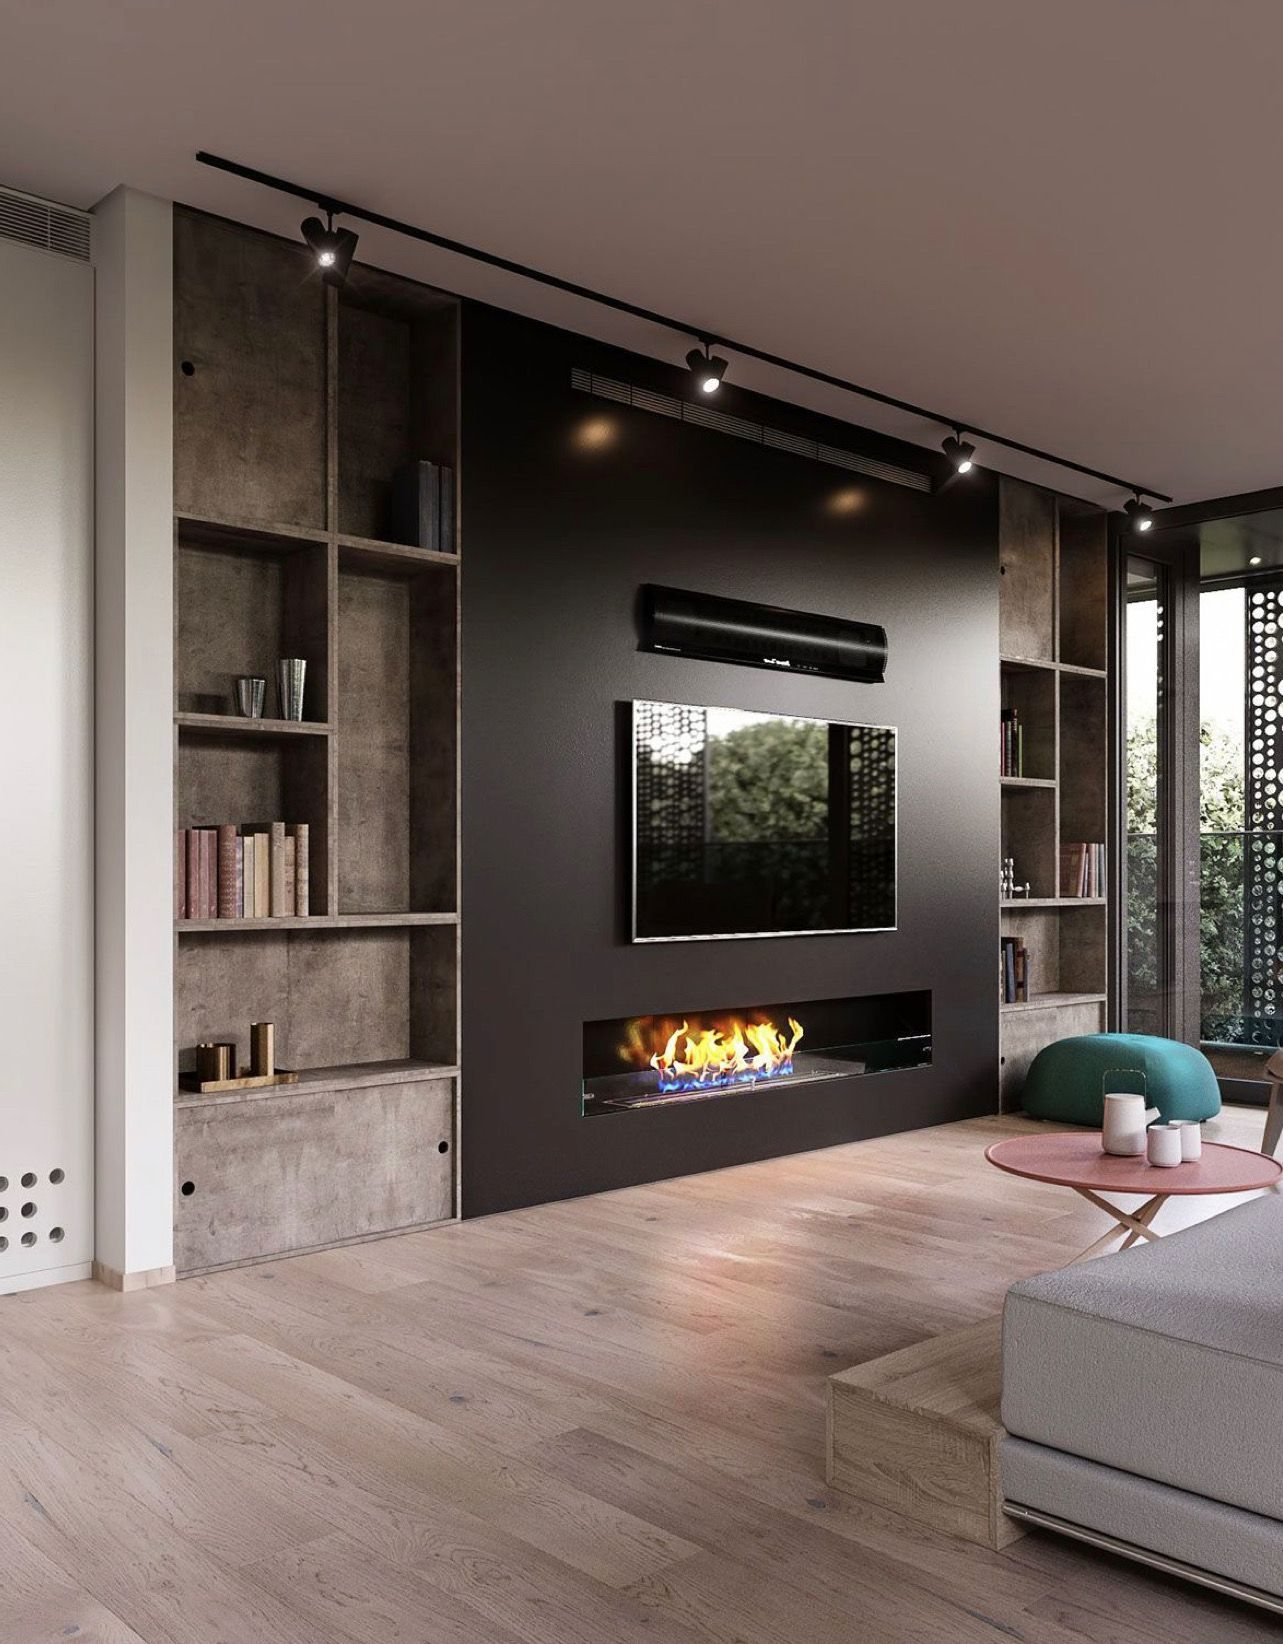 Amazing fire place ideas for our loft | Living room tv ...